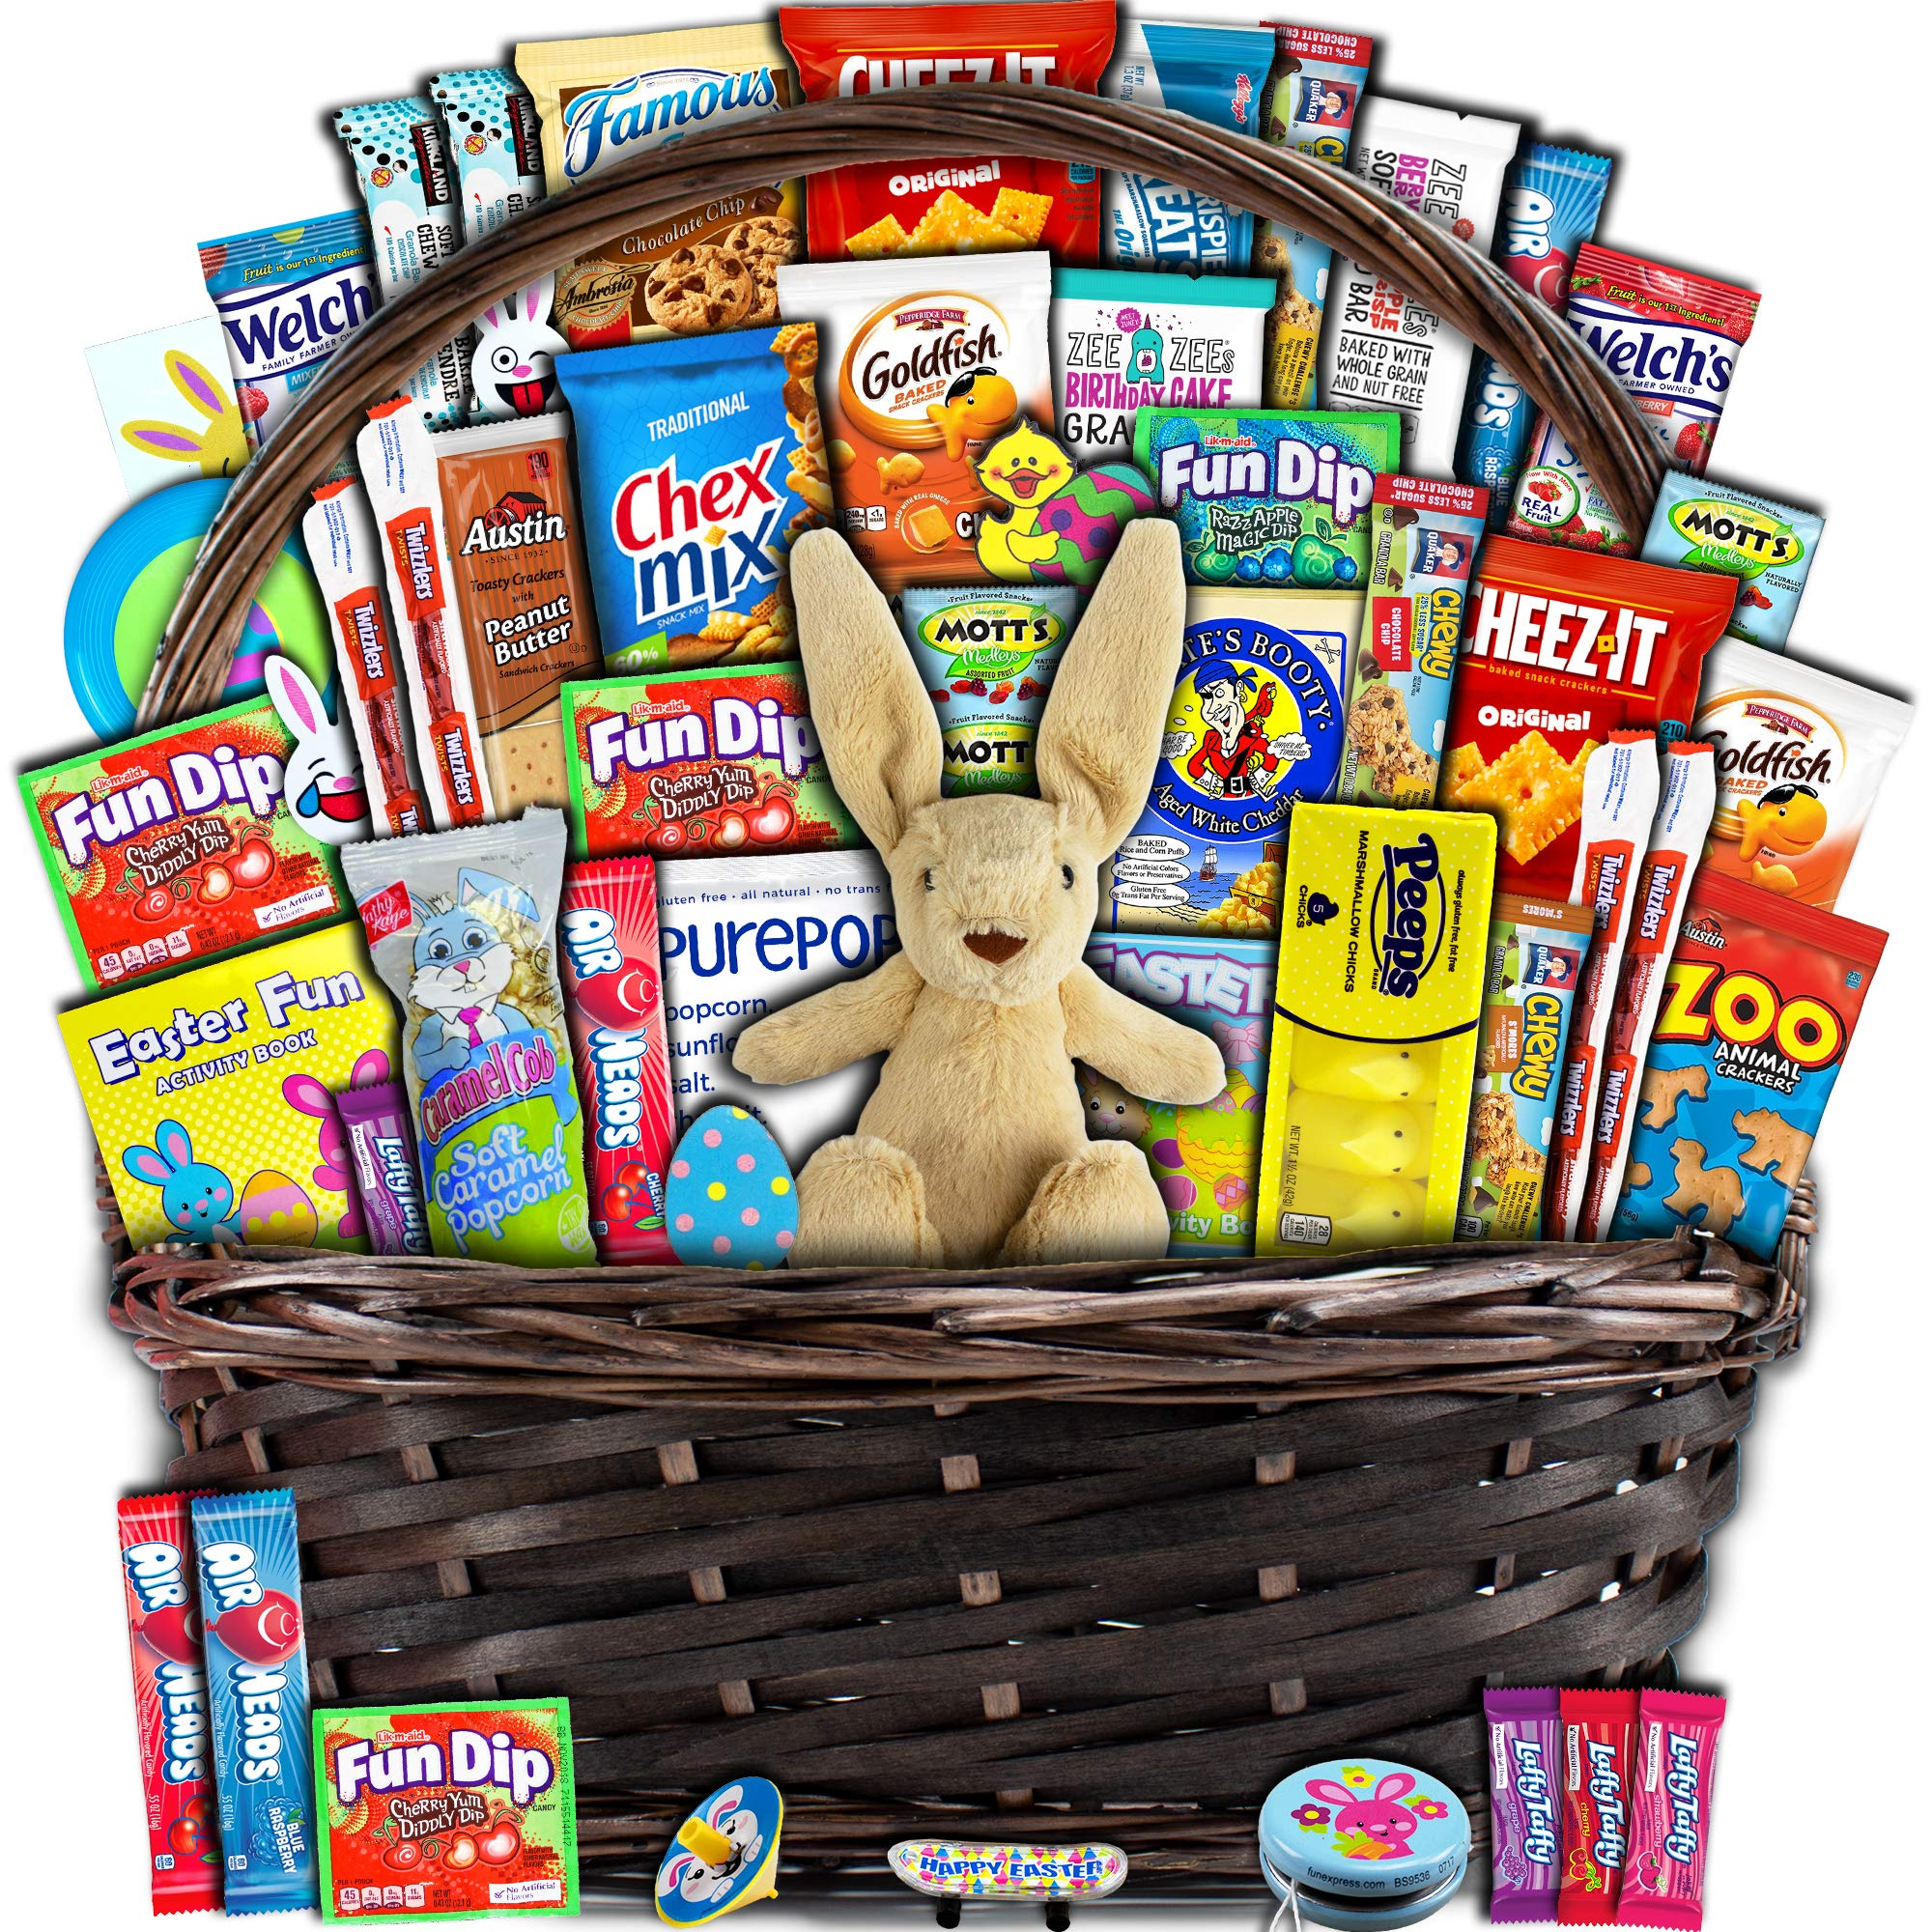 Easter Gift Basket for Kids and Adults (50ct) - Already Filled wrapped with Plush Easter Bunny, Chocolate, Candy, Peeps, and Toys - Boys, Girls, Grandchildren, Young Children, Toddlers, Men, Women